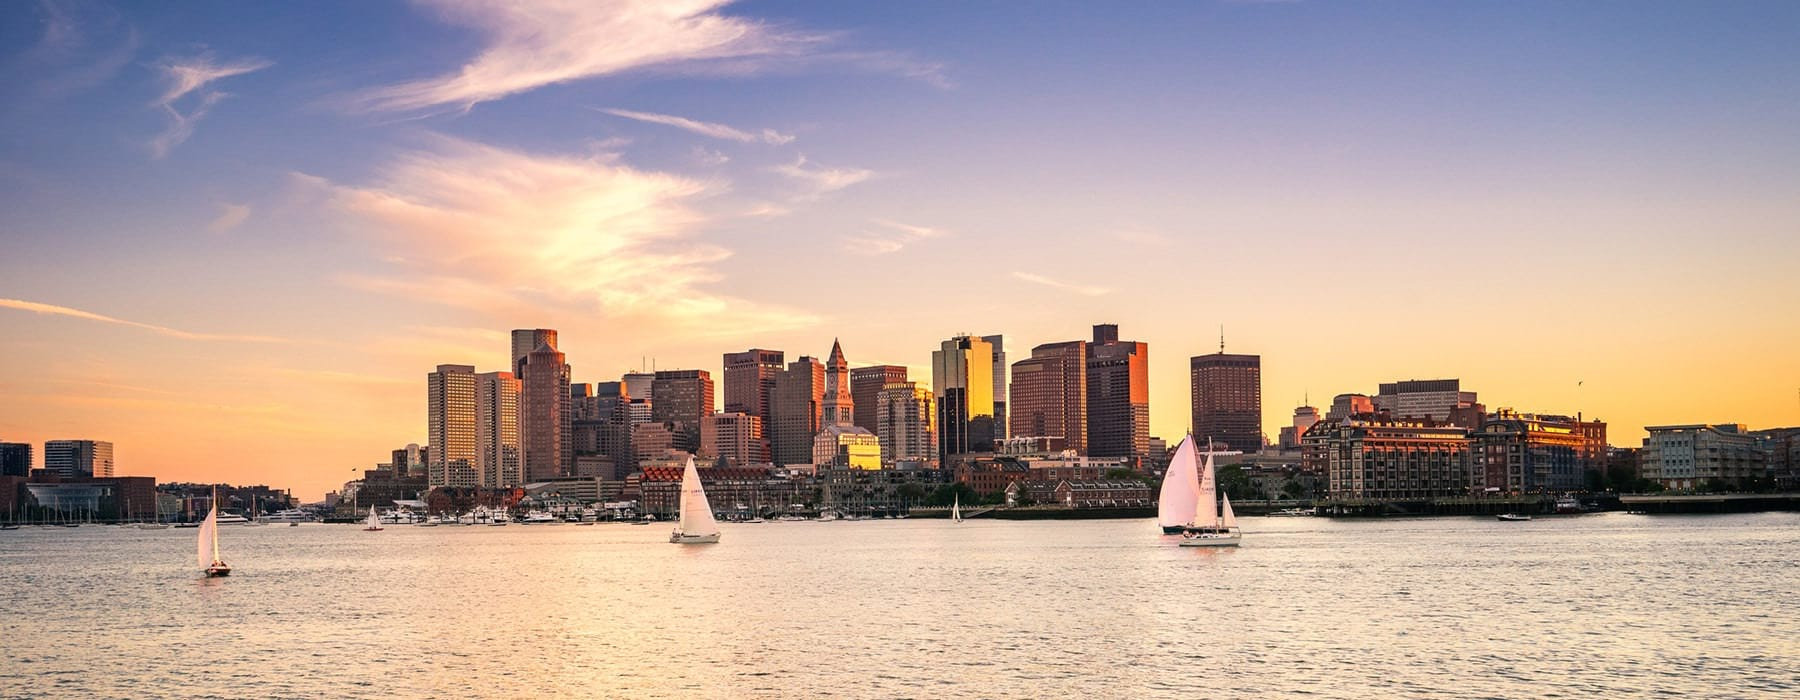 sailboats on the water with city skyline in the background